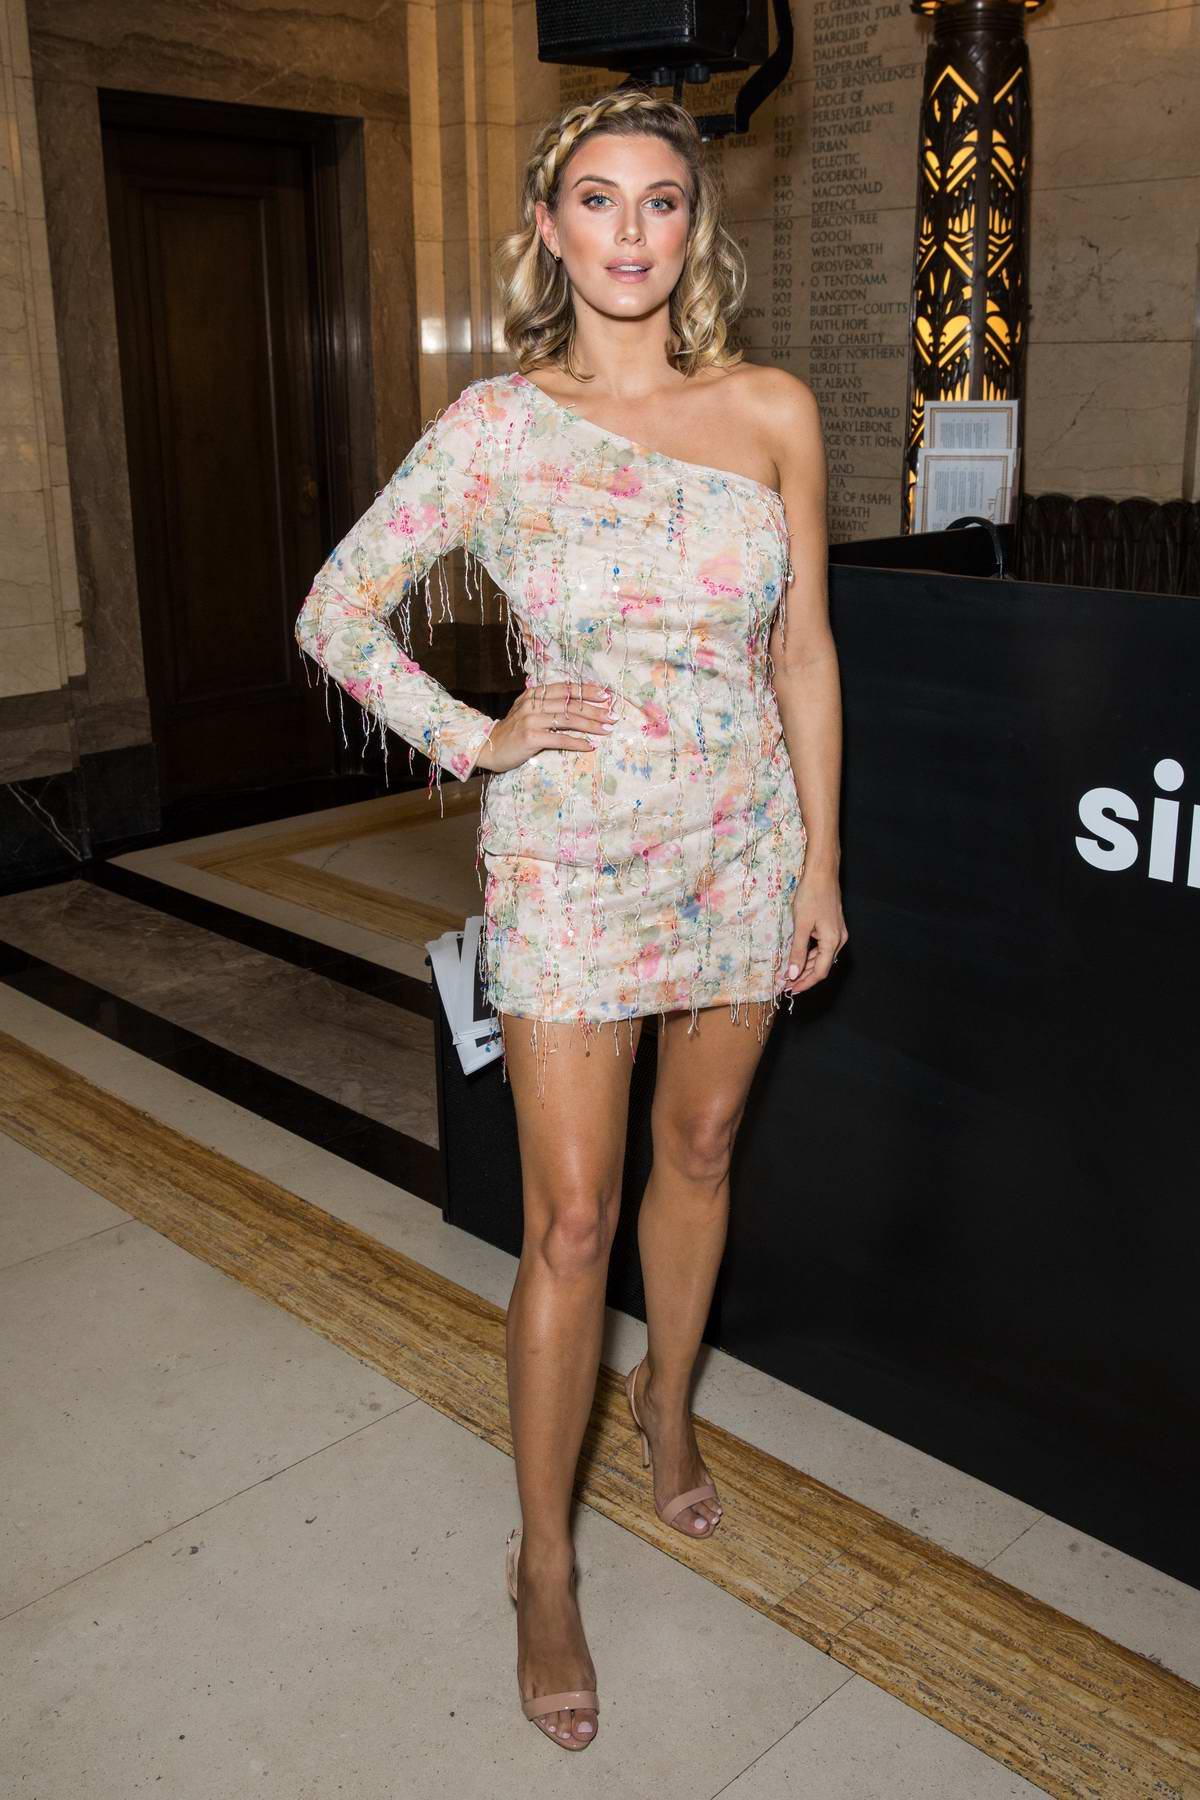 Ashley James attends Simply Be 'The New Icons' Photocall in London, UK